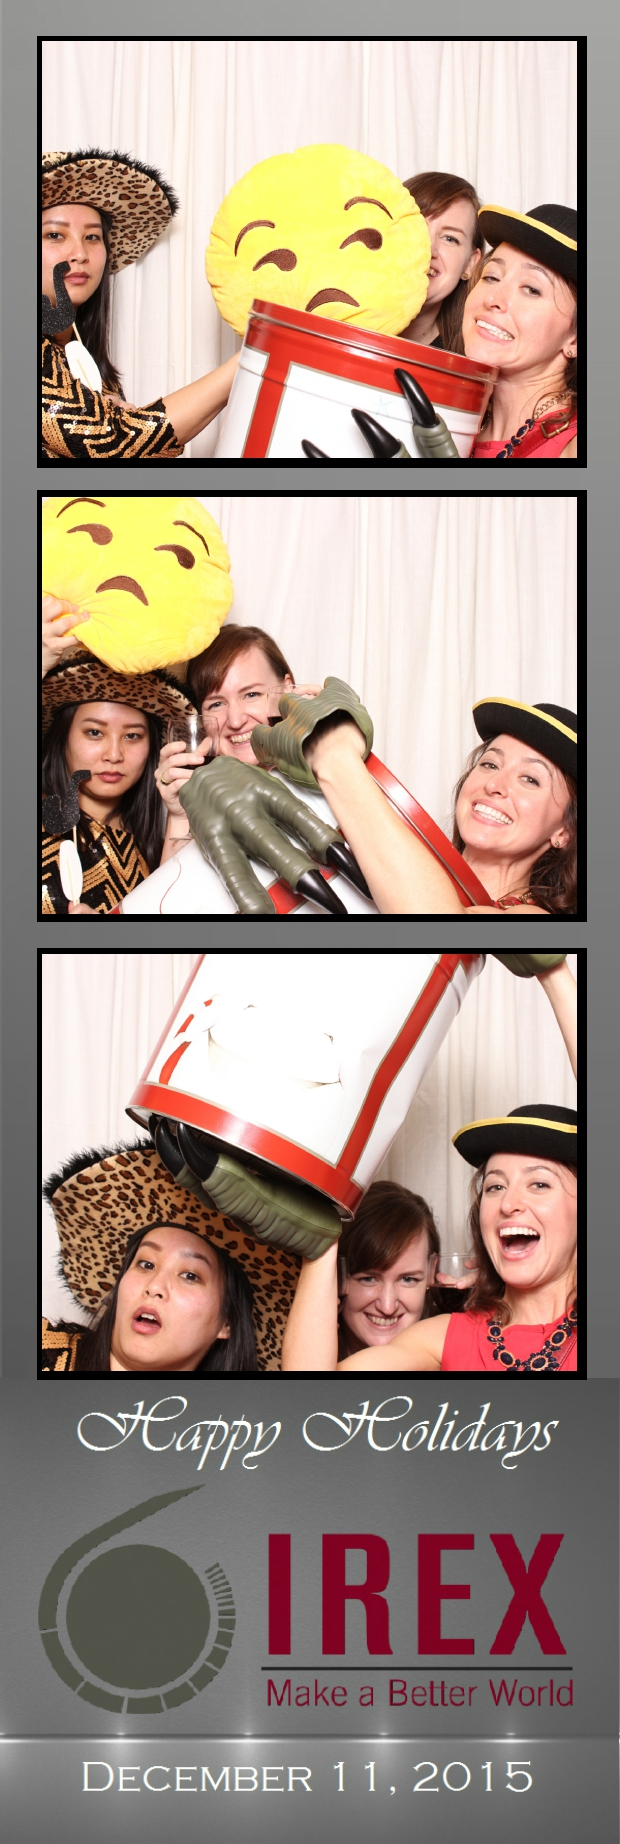 Guest House Events Photo Booth Strips IREX (86).jpg